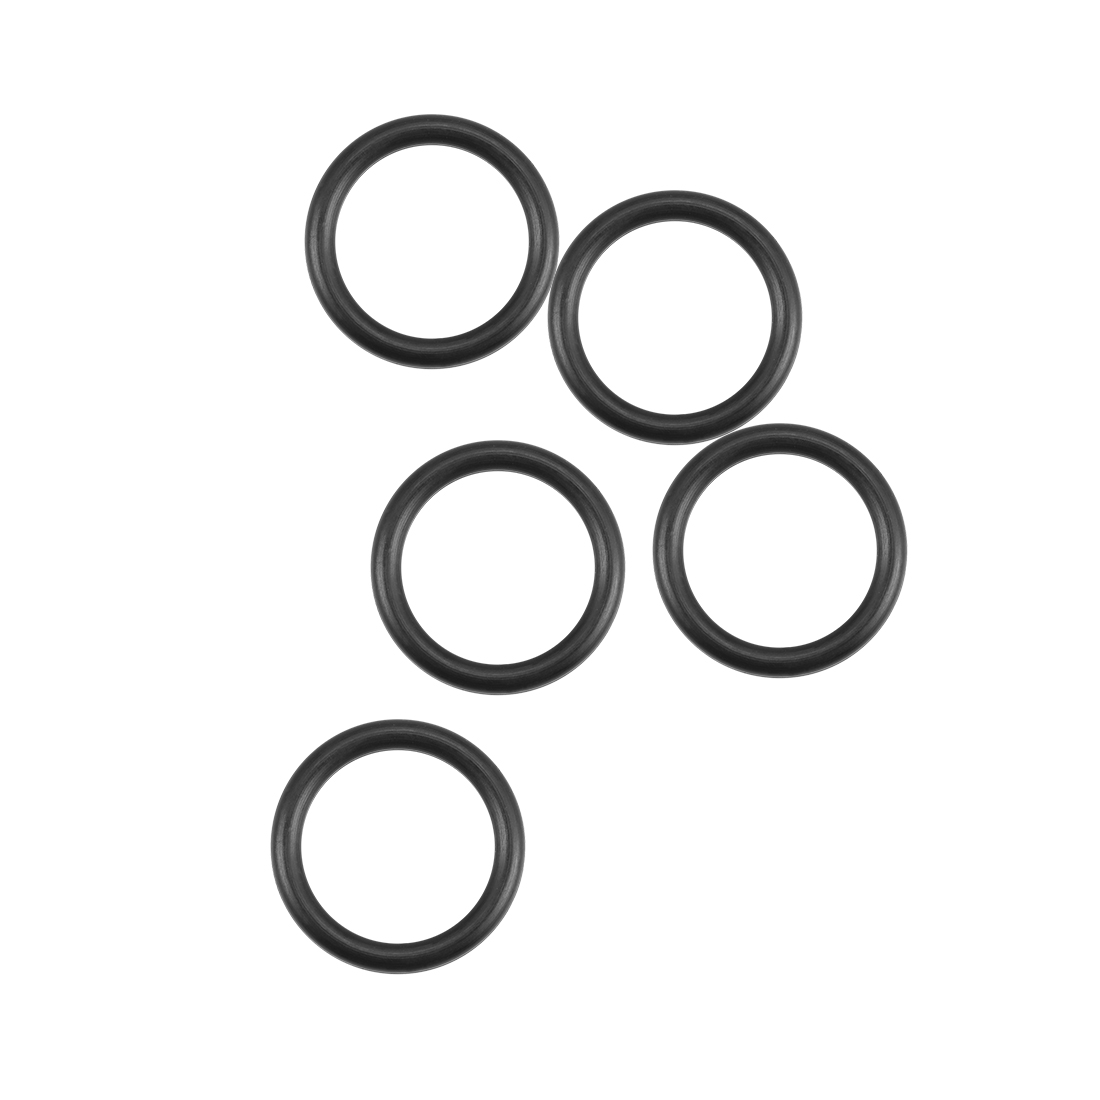 O-Rings Nitrile Rubber 10.5mm x 14.1mm x 1.8mm Round Seal Gasket 5Pcs